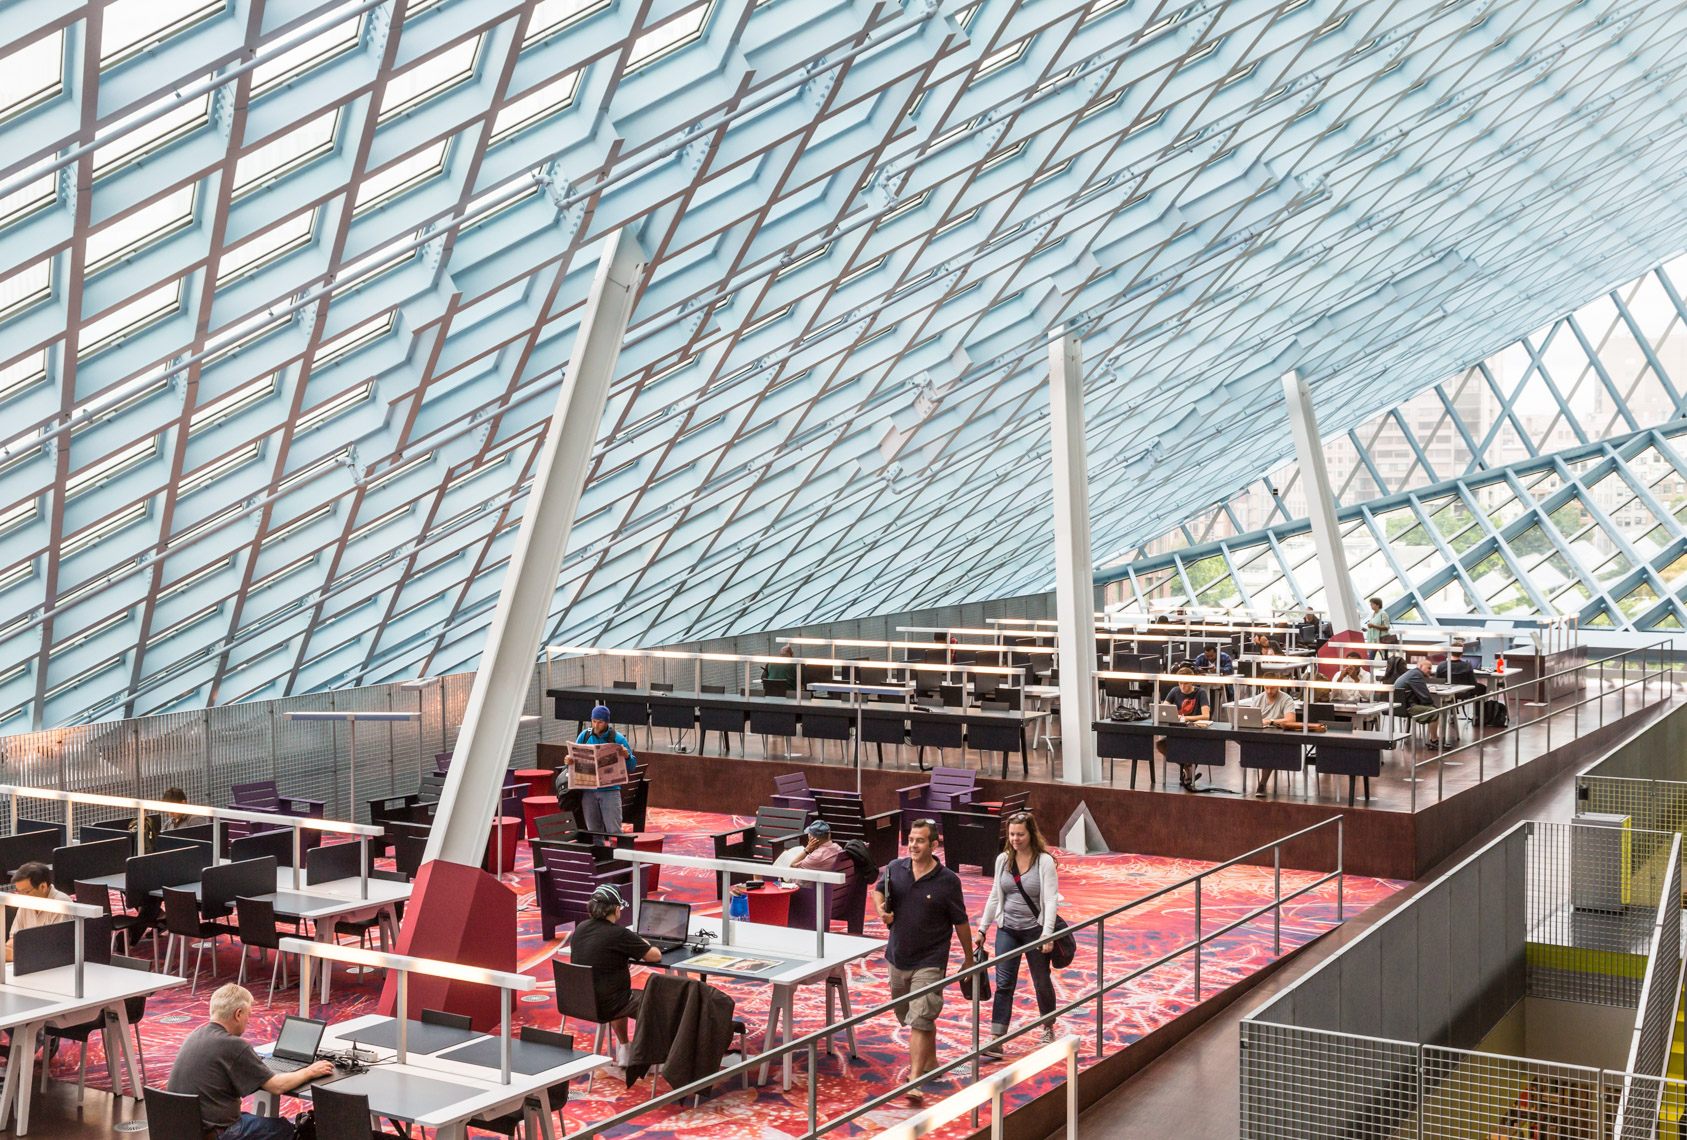 The main reading room in Seattle Central Library. Architecture by Rem Koolhaas and Joshua Prince-Ramus.